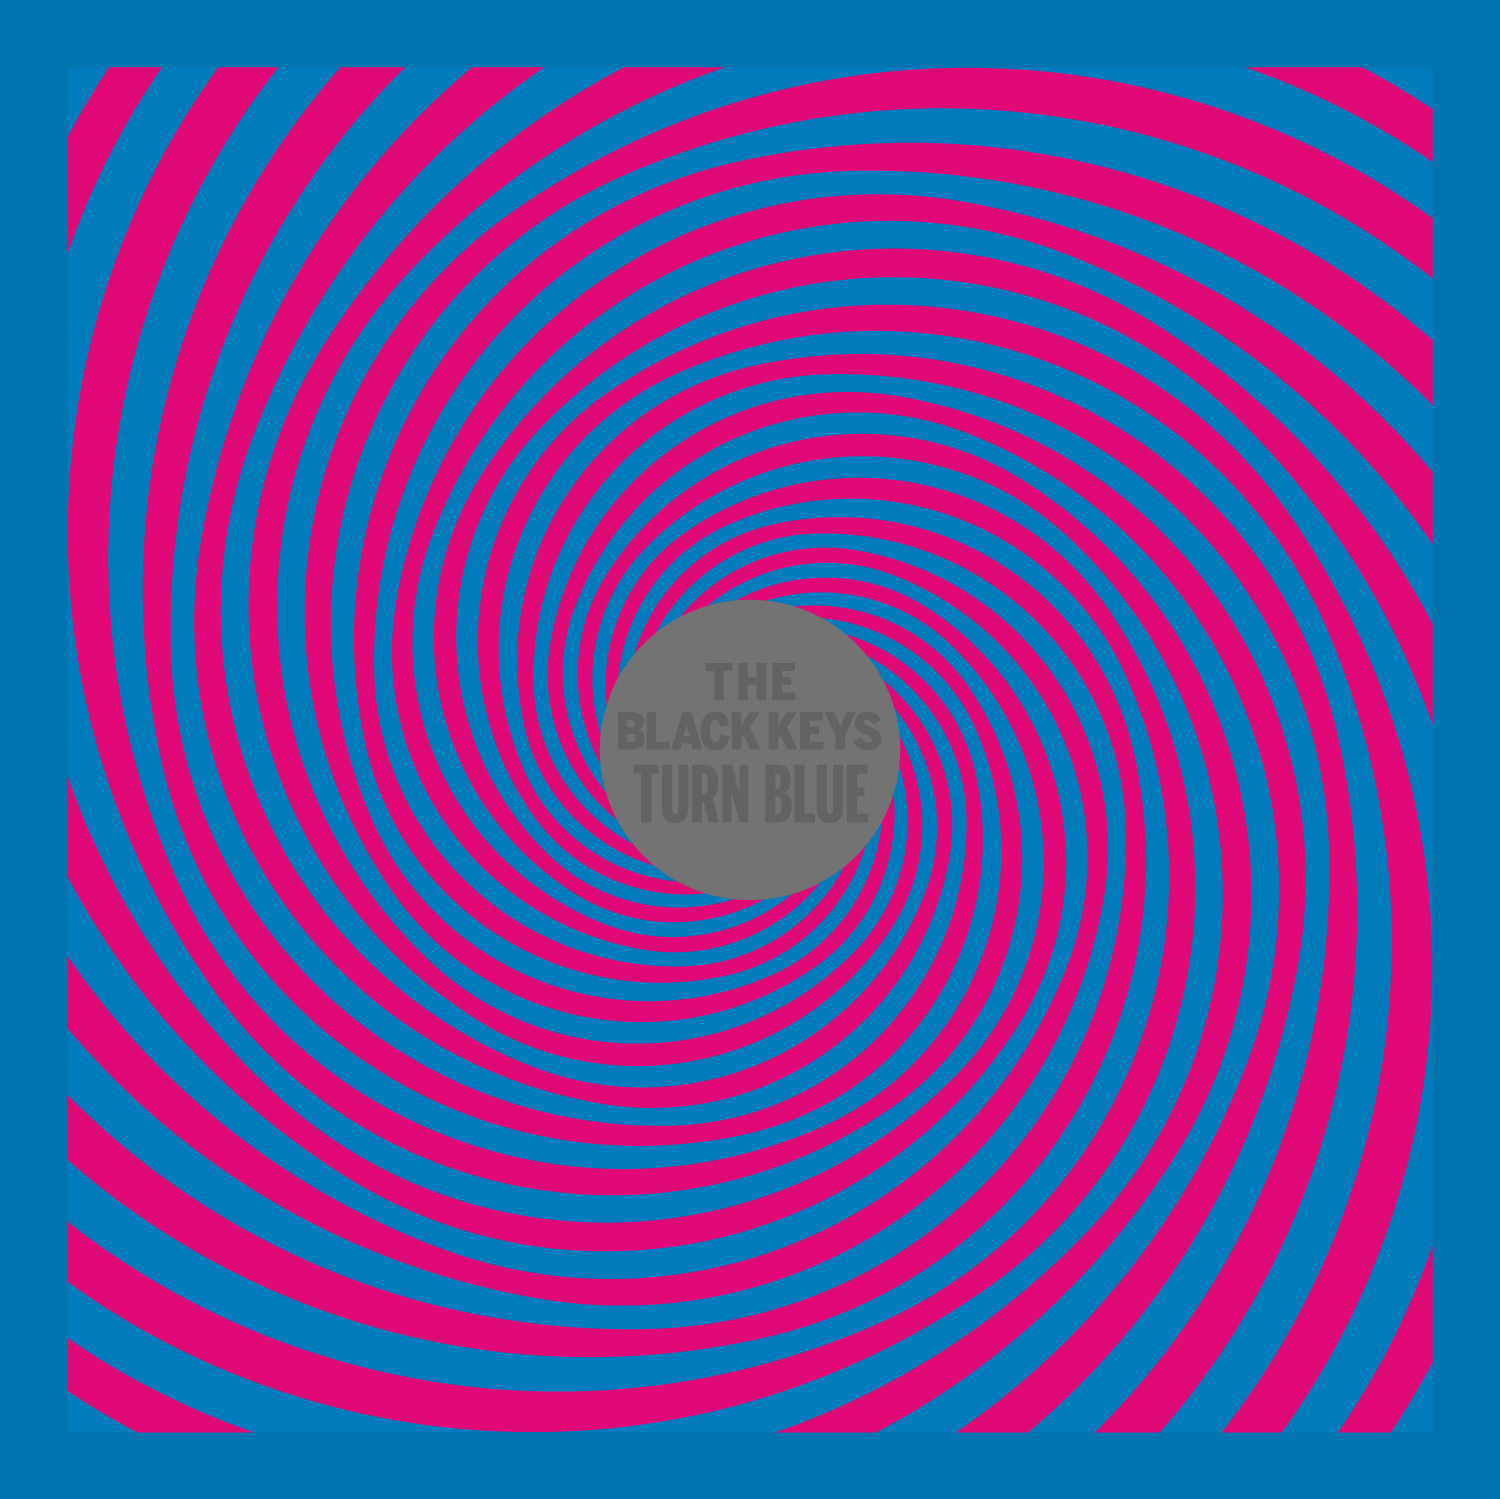 Turn Blue-The Black Keys